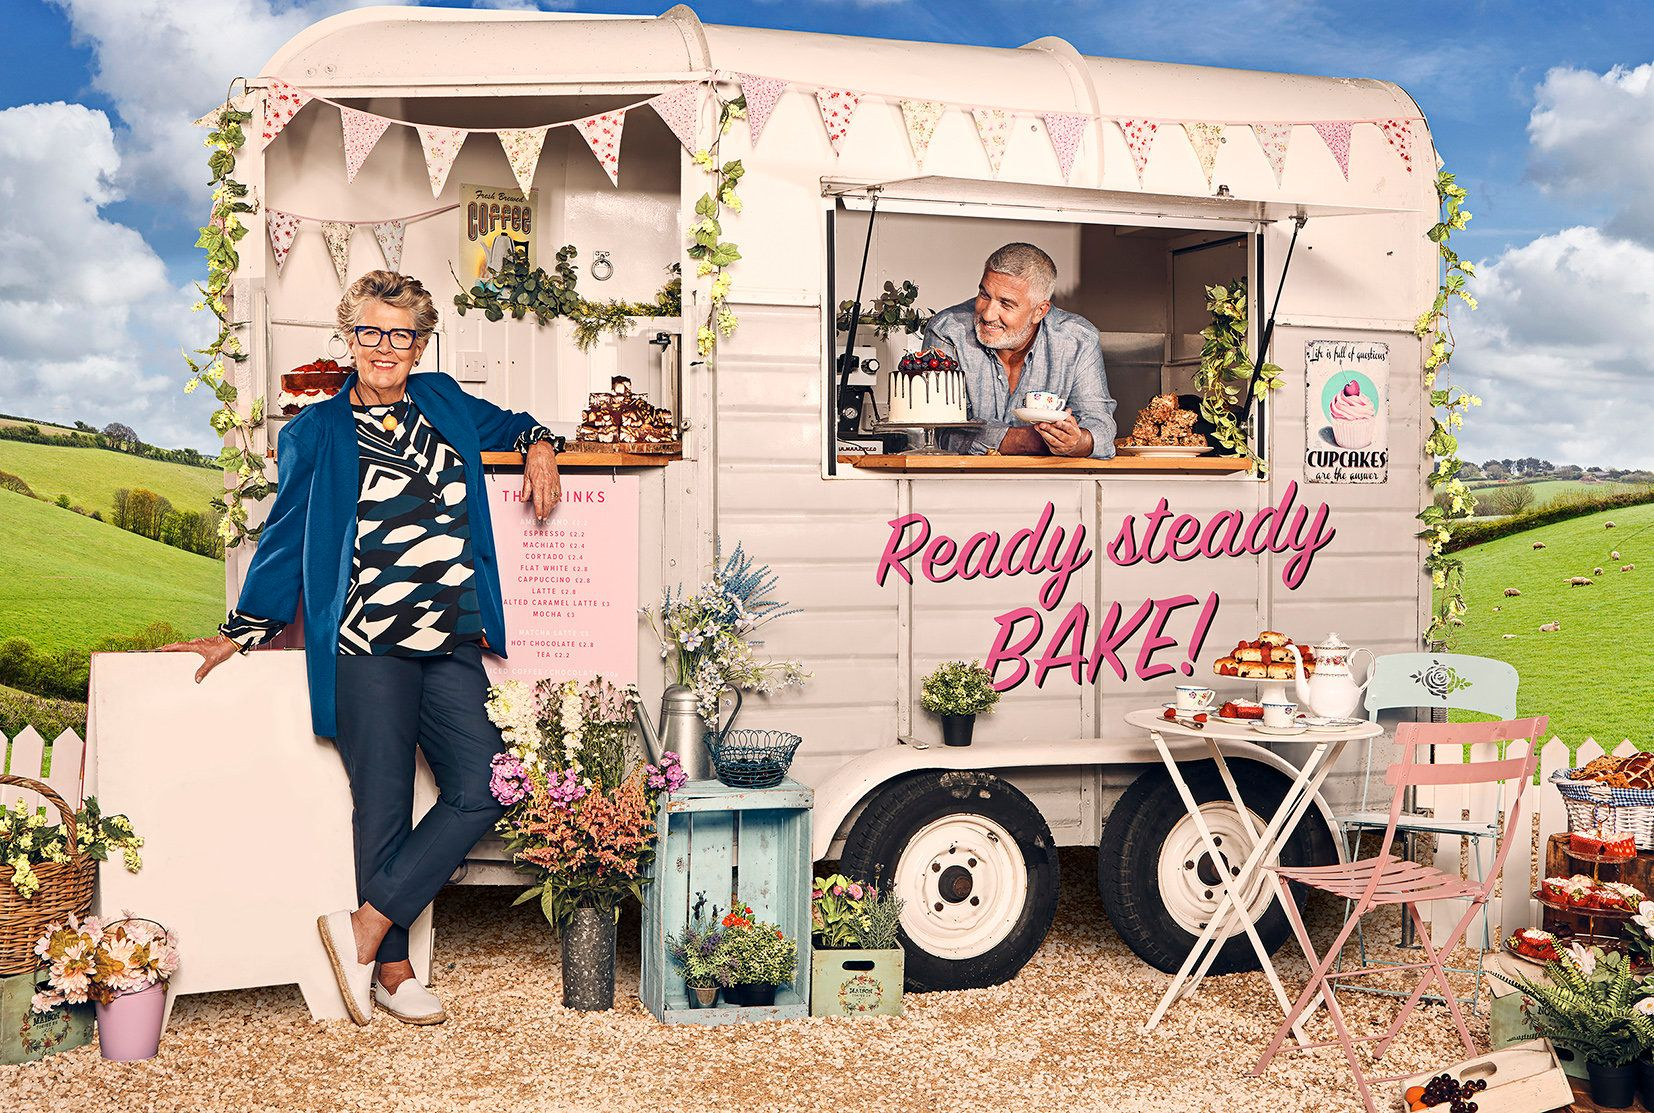 'Bake Off' Judge Prue Leith Says She Should Have Her Phone Confiscated In Case She Reveals This Year's